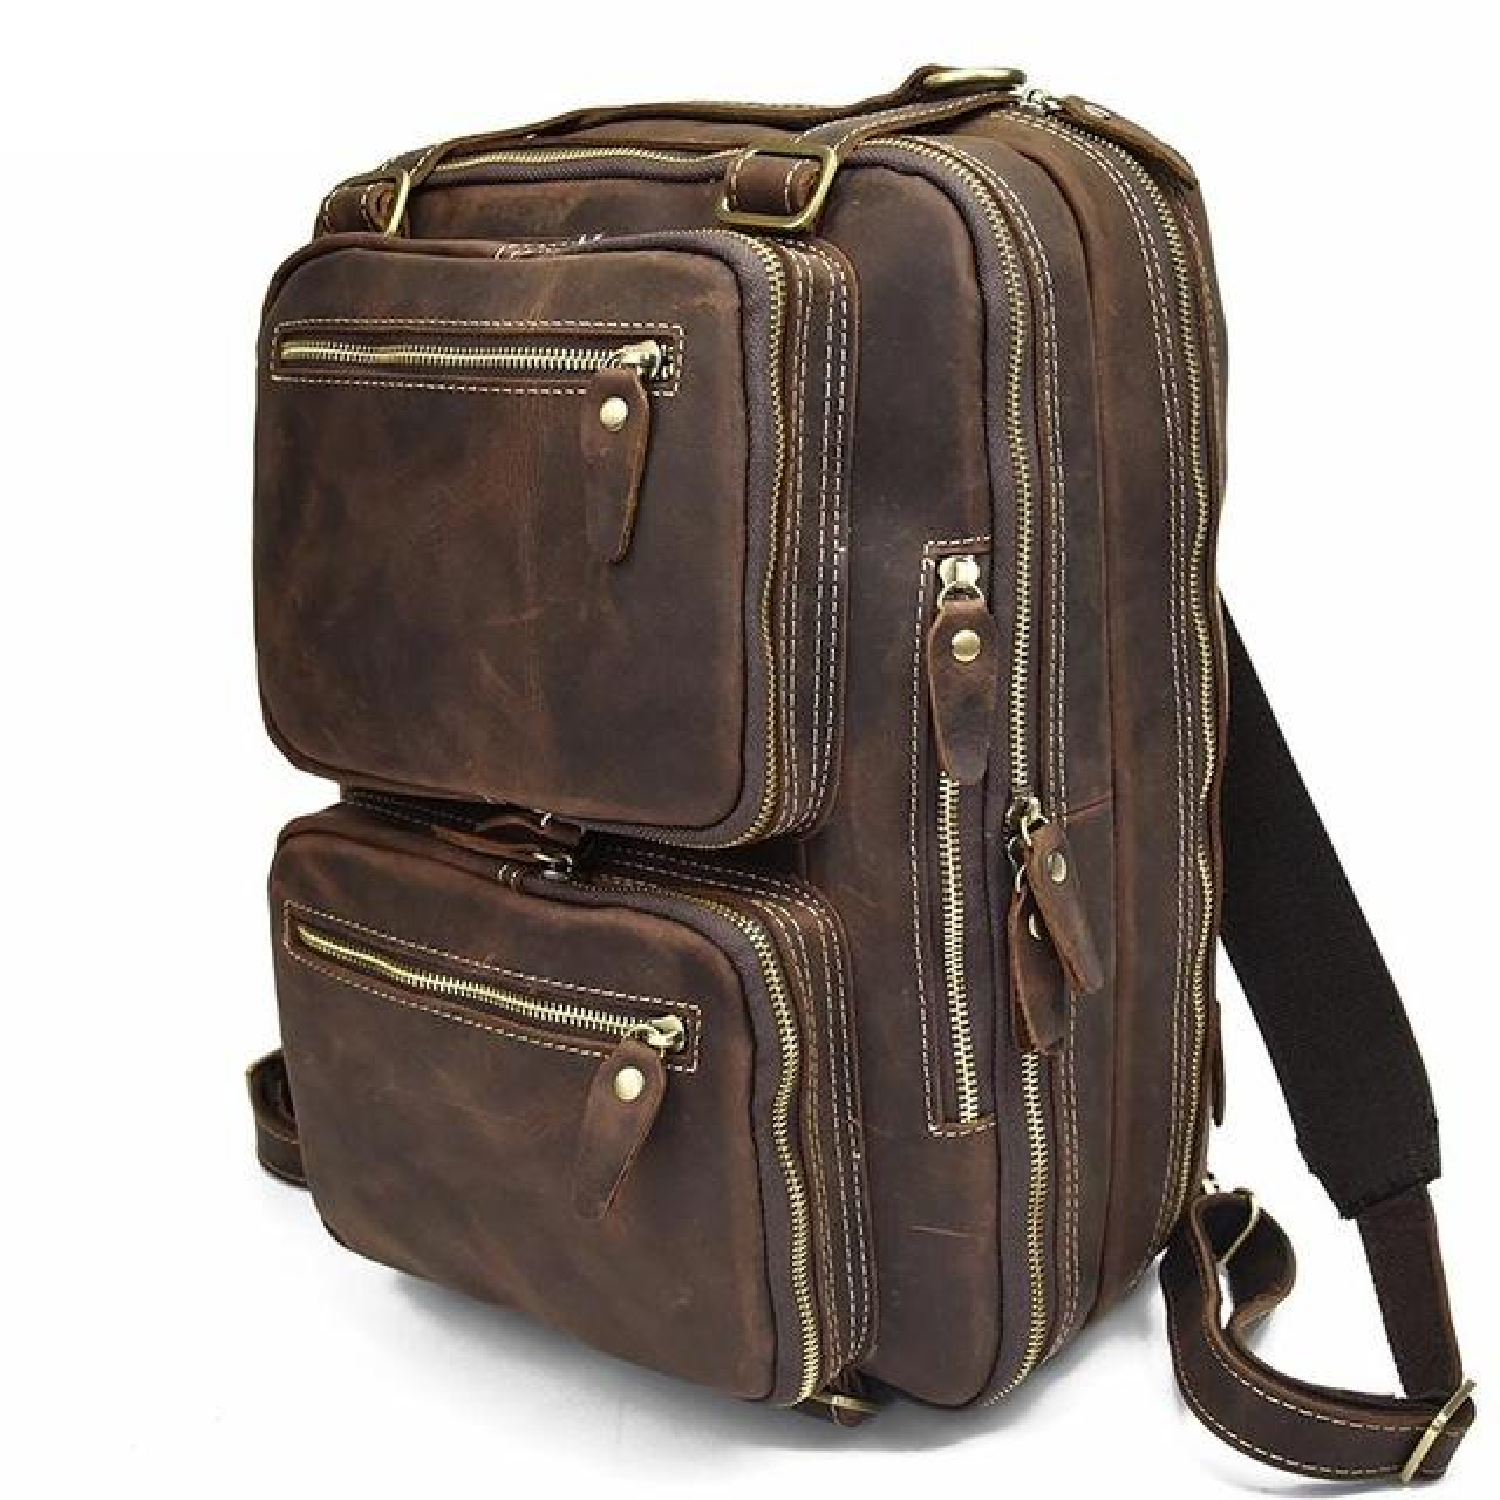 1c2058c0af0a Backpack Laptop Bag Leather Rucksack Men Travel School Shoulder Vintage  Mens Genuine Messenger New Camping backpacks